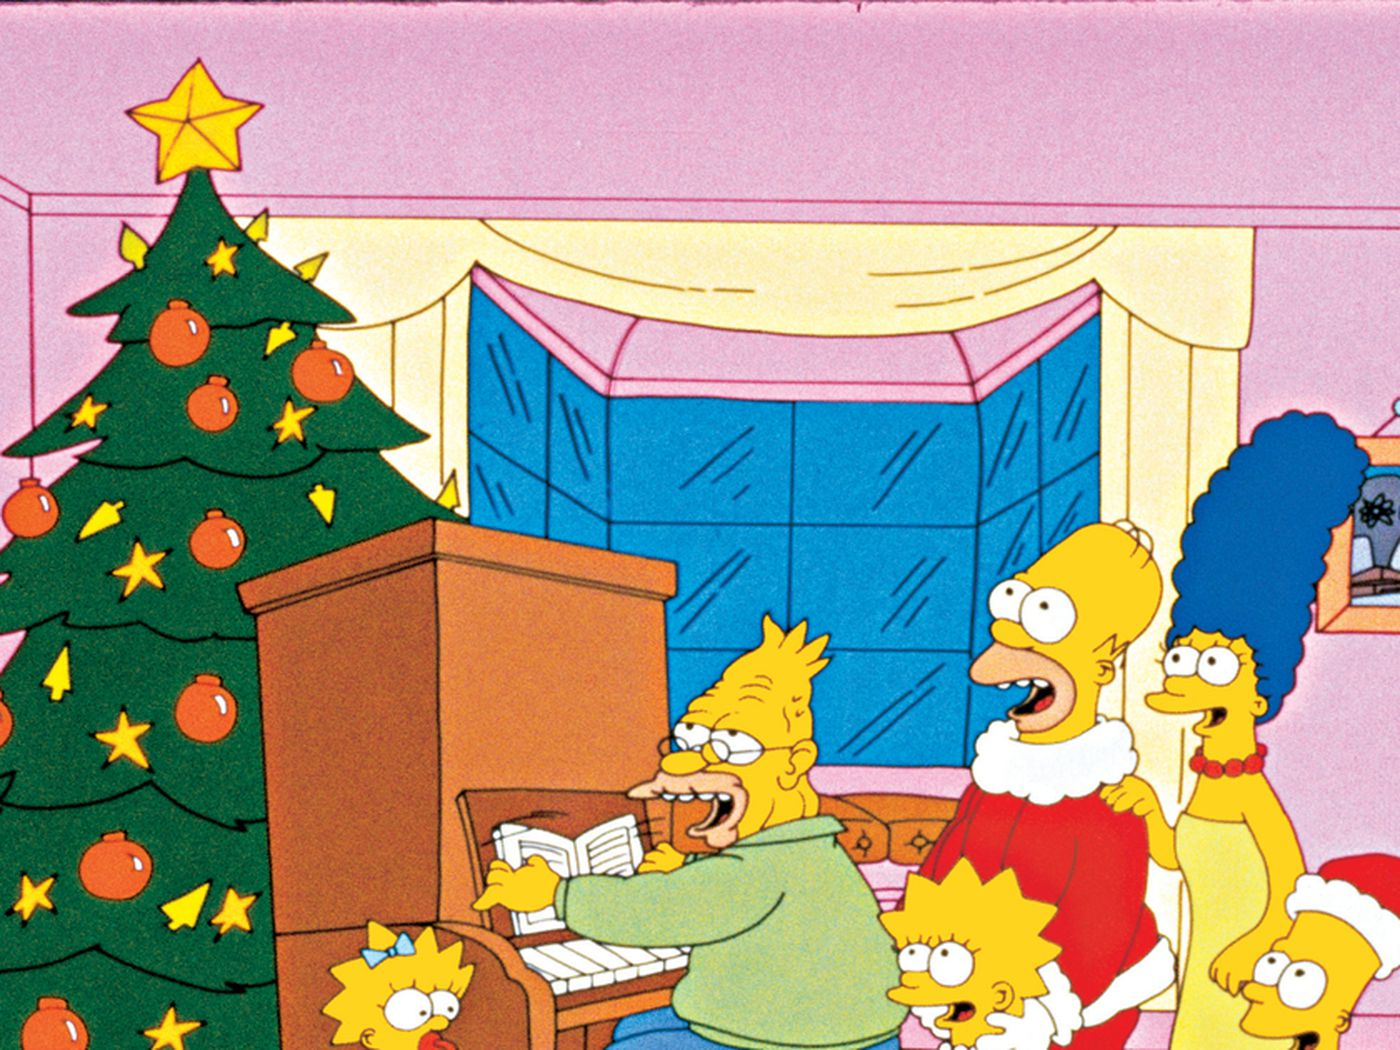 Kincade Upstill: Fox renewed 'The Simpsons' for two more